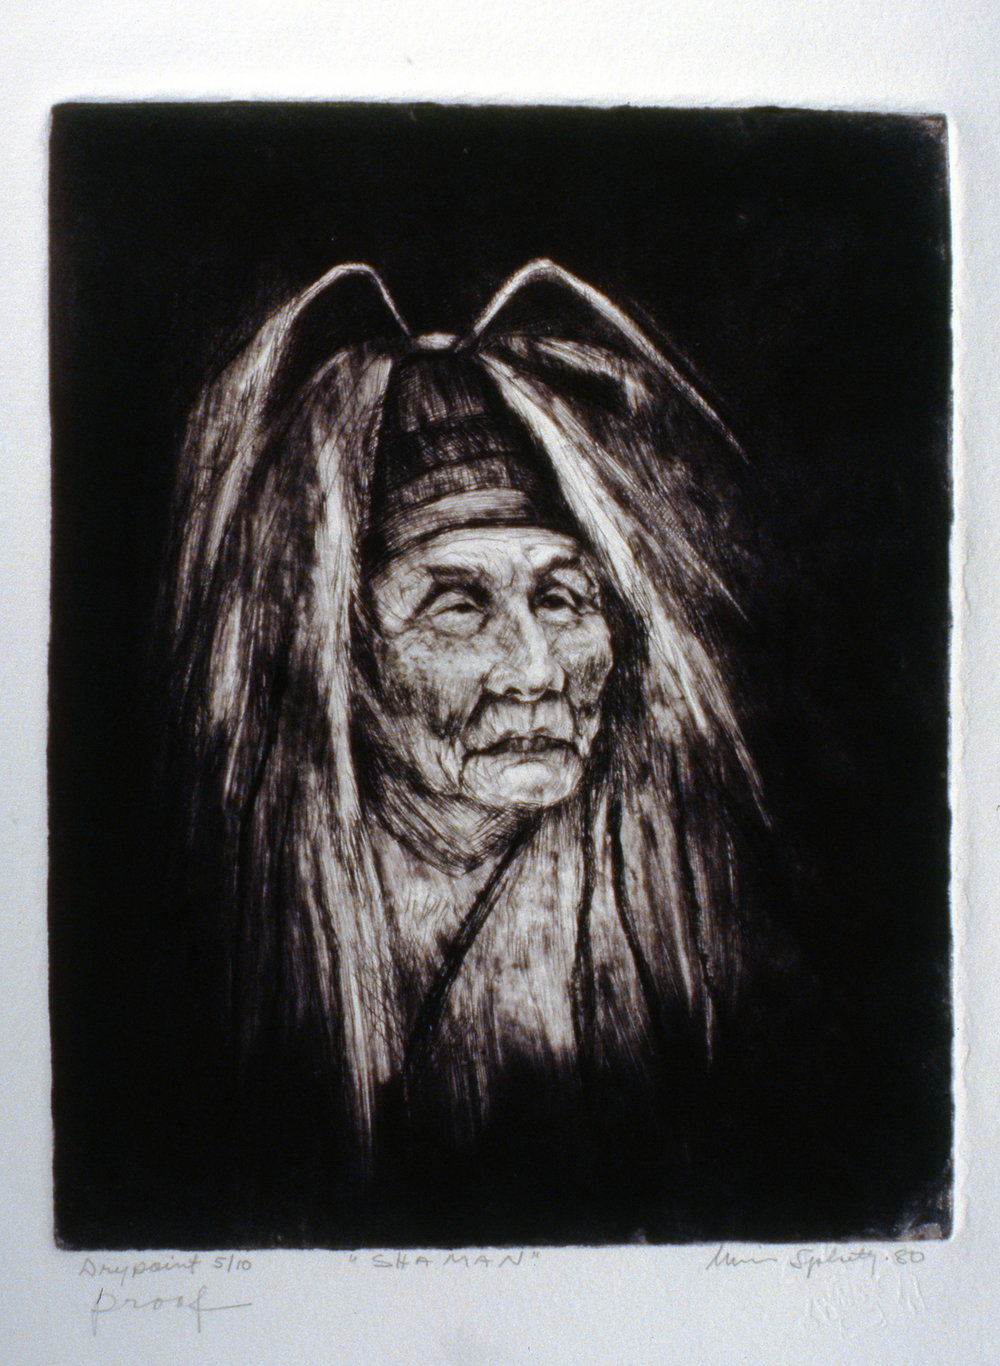 Shaman , 1980, Minn Sjølseth, artist proof marked 5/10, 25 x 20 cm, 1996.02.12